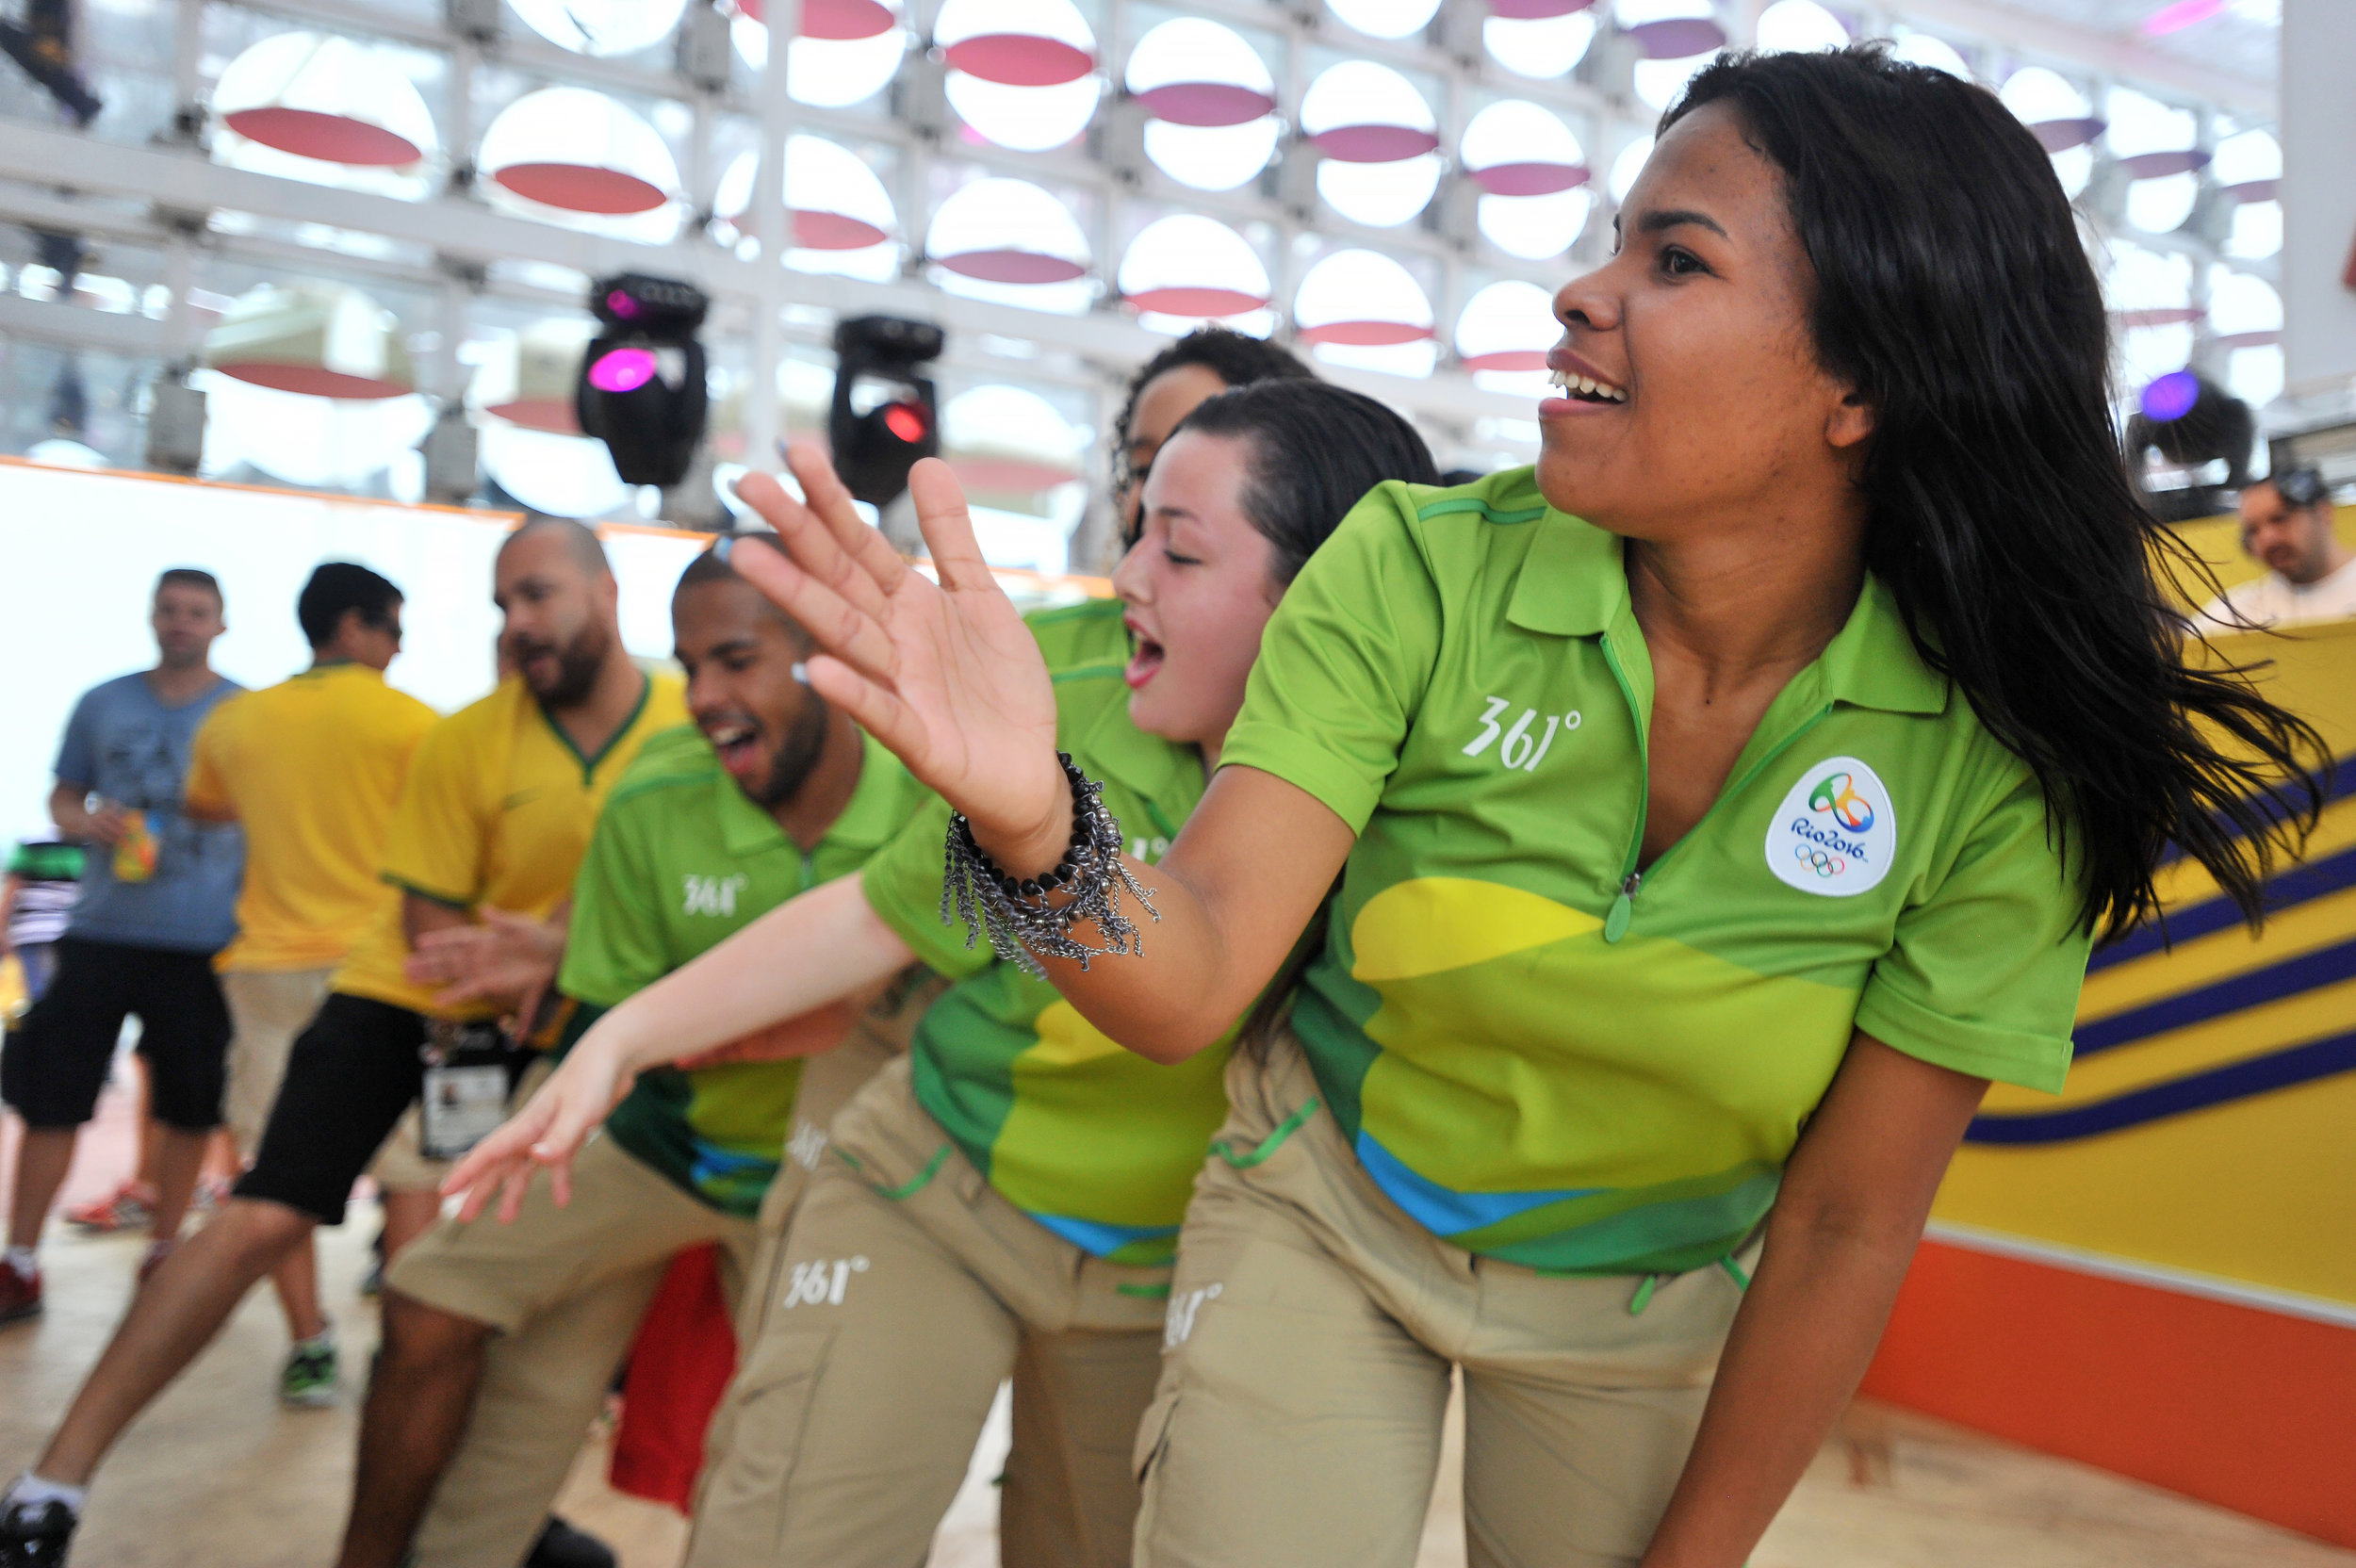 Olympic volunteers dance to pop music at the Olympic Park in Rio de Janeiro, Brazil, on August 8, 2016. (Sarah Stier | Ball State at the Games)